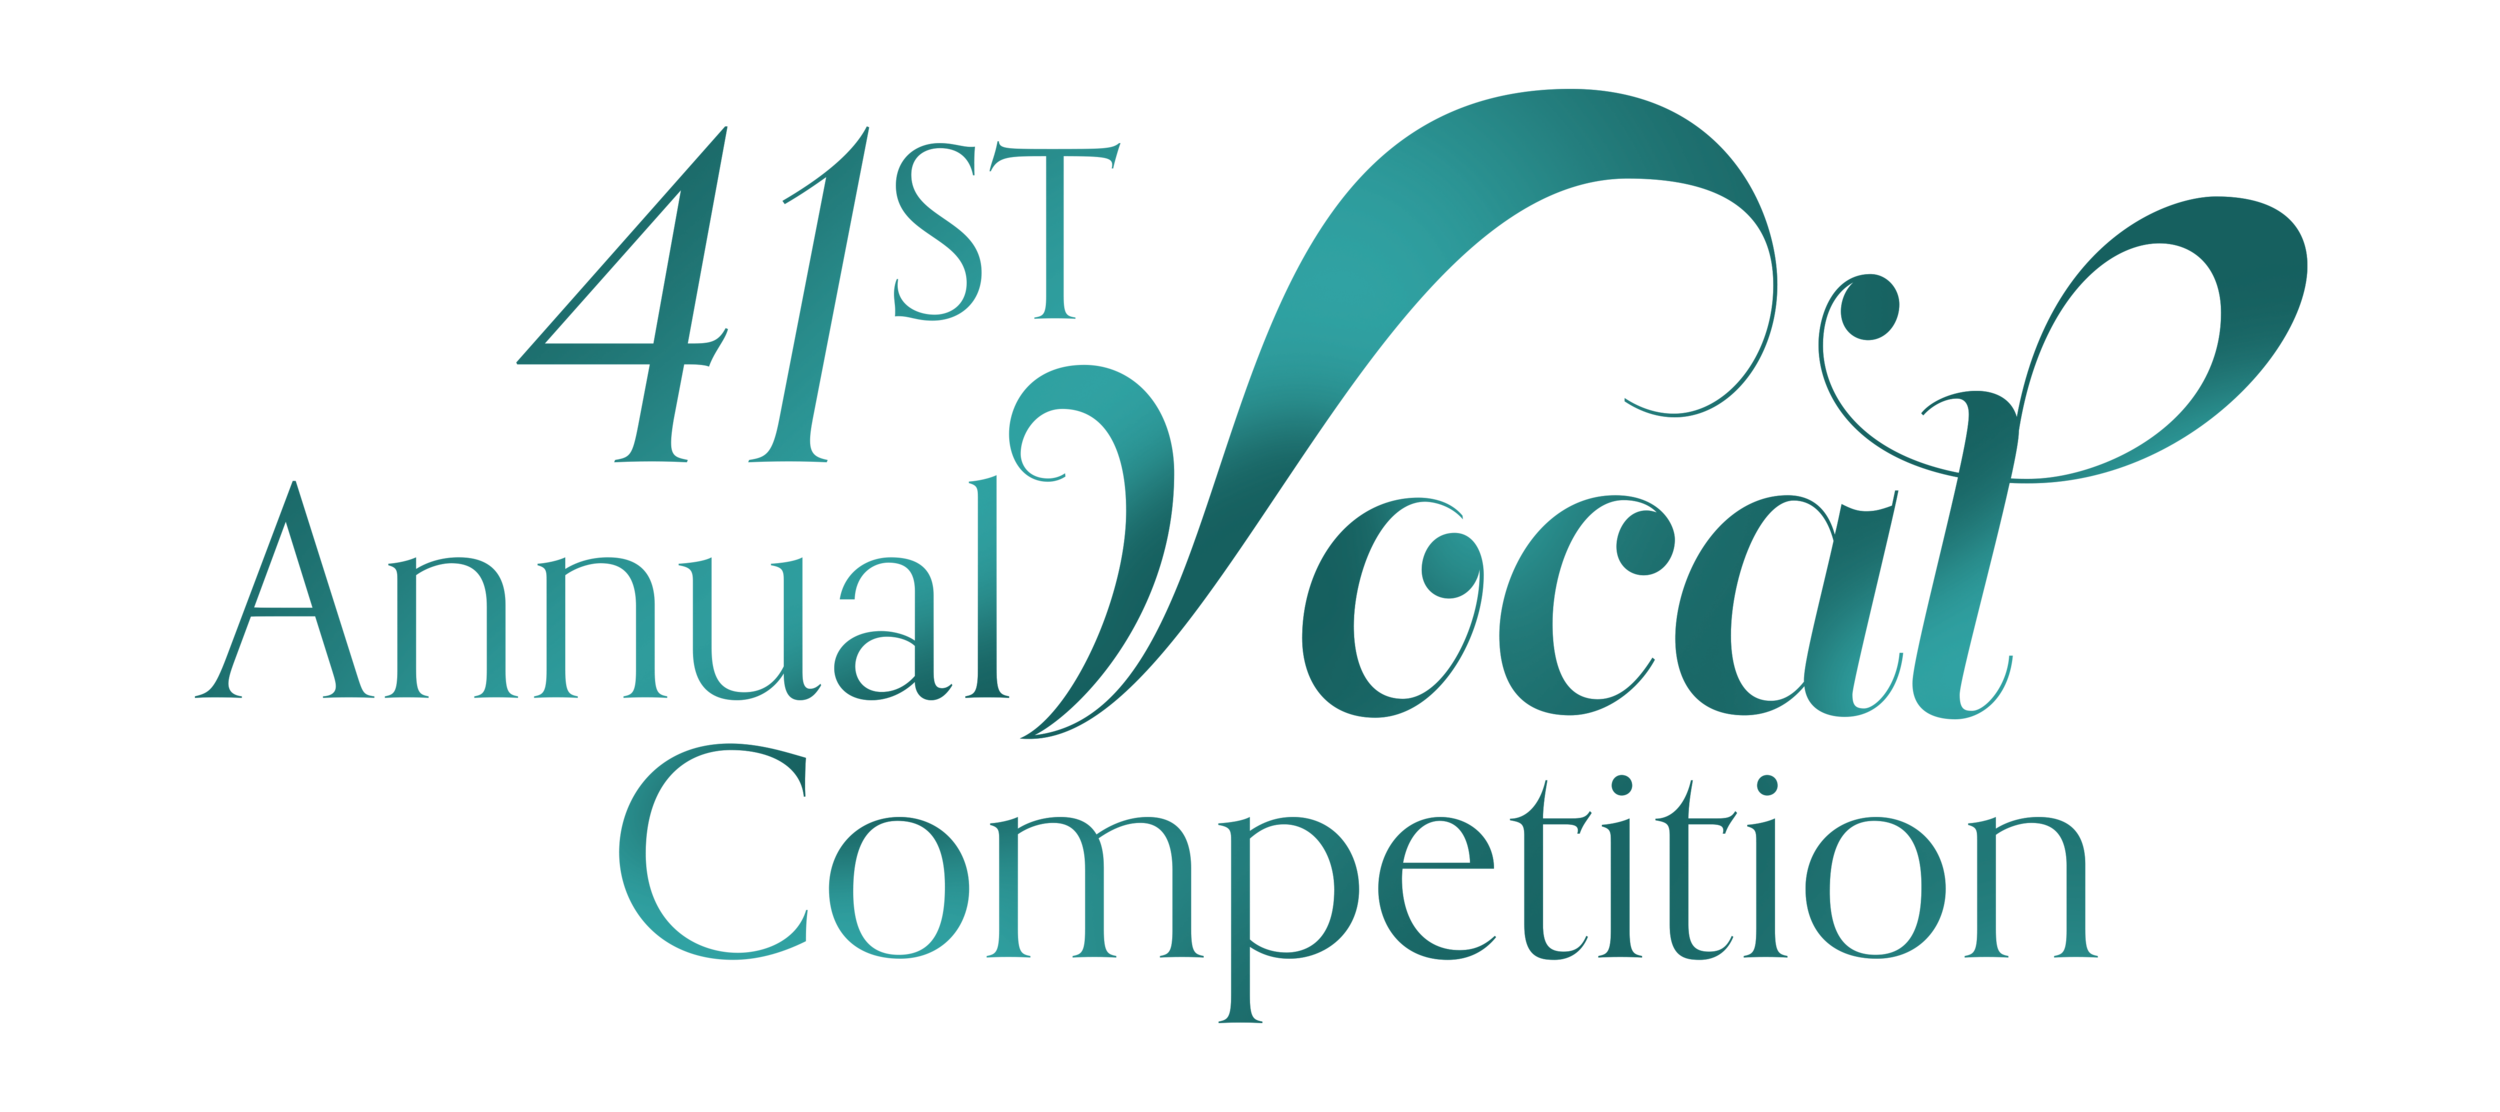 39th Annual Vocal Competition, Semi-Finals | Saturday, May 6, 2017 | 10:30 A.M. | Hulsey Recital Hall, UAB